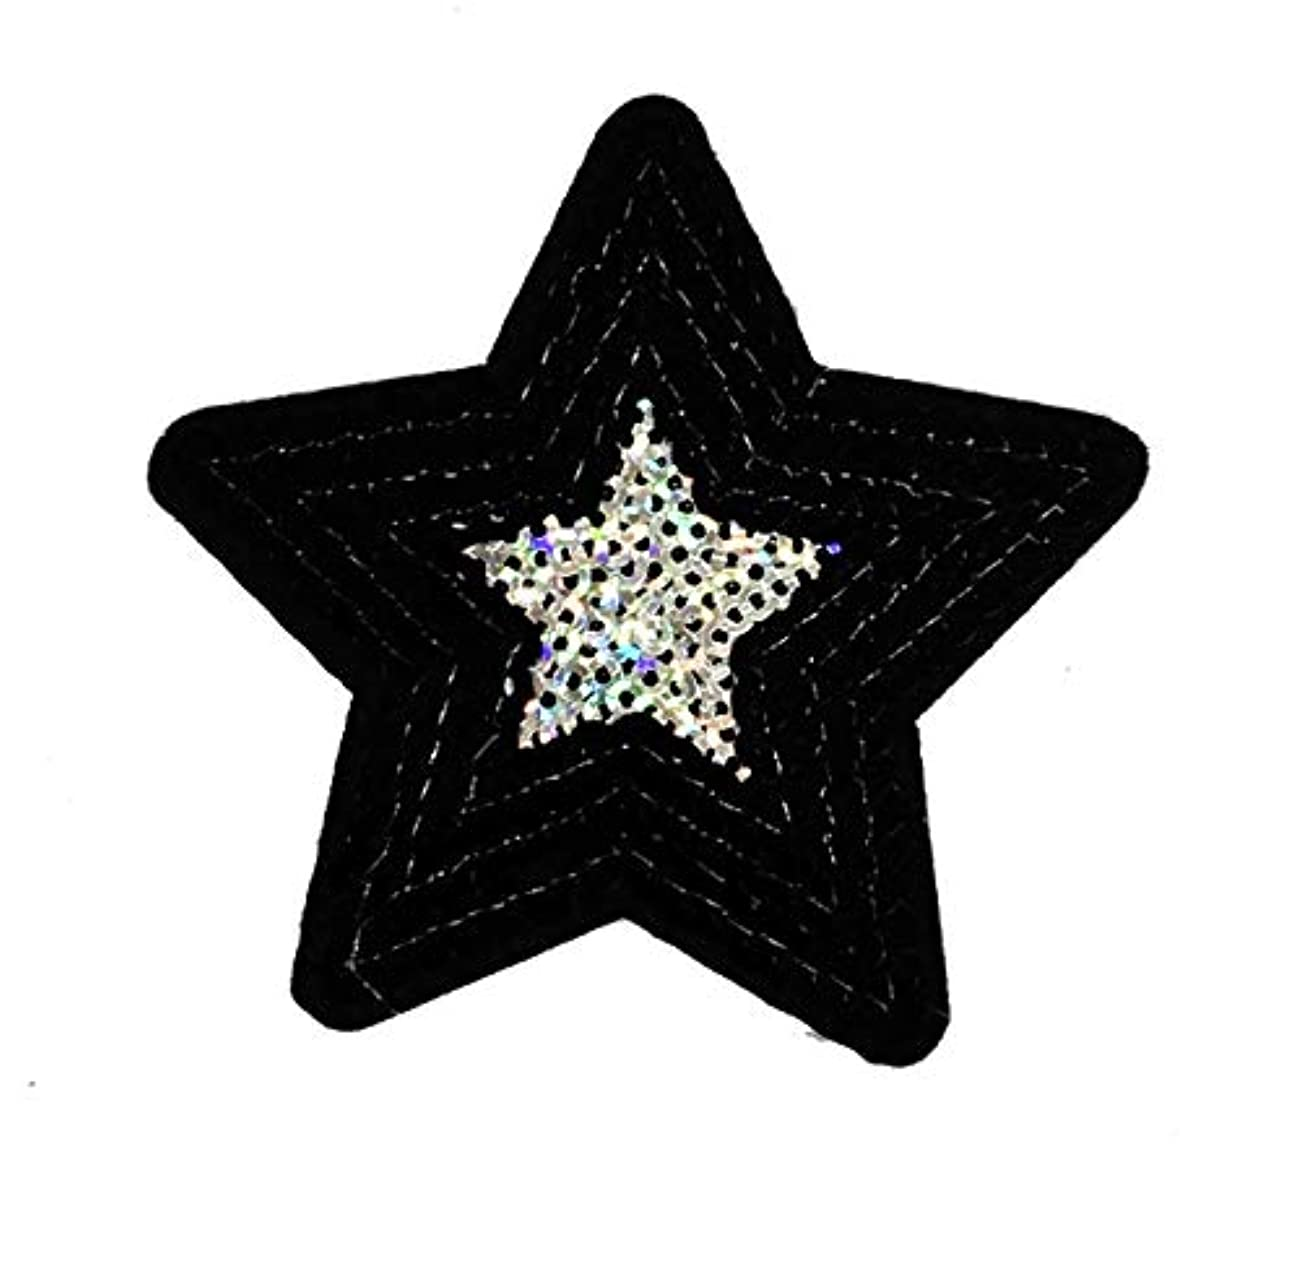 Black Star Sequined Patch Embroidered Iron on Patch No.2